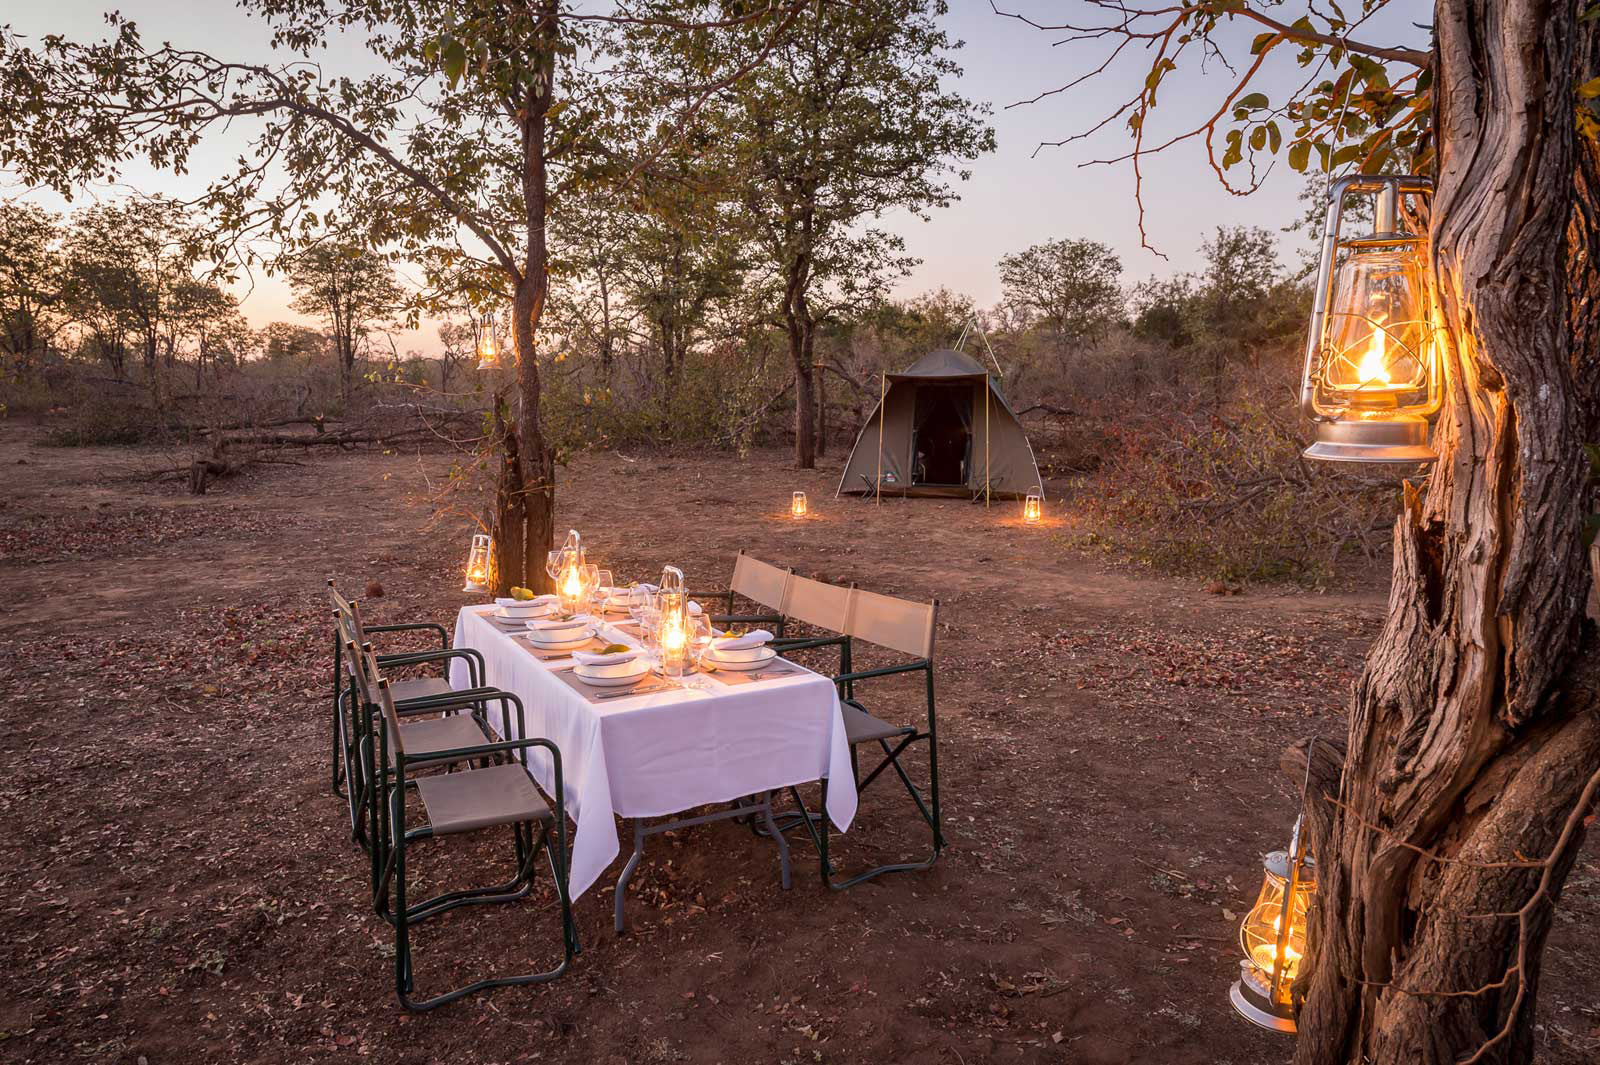 Mobile safari campsite ready for dinner © Africa on Foot